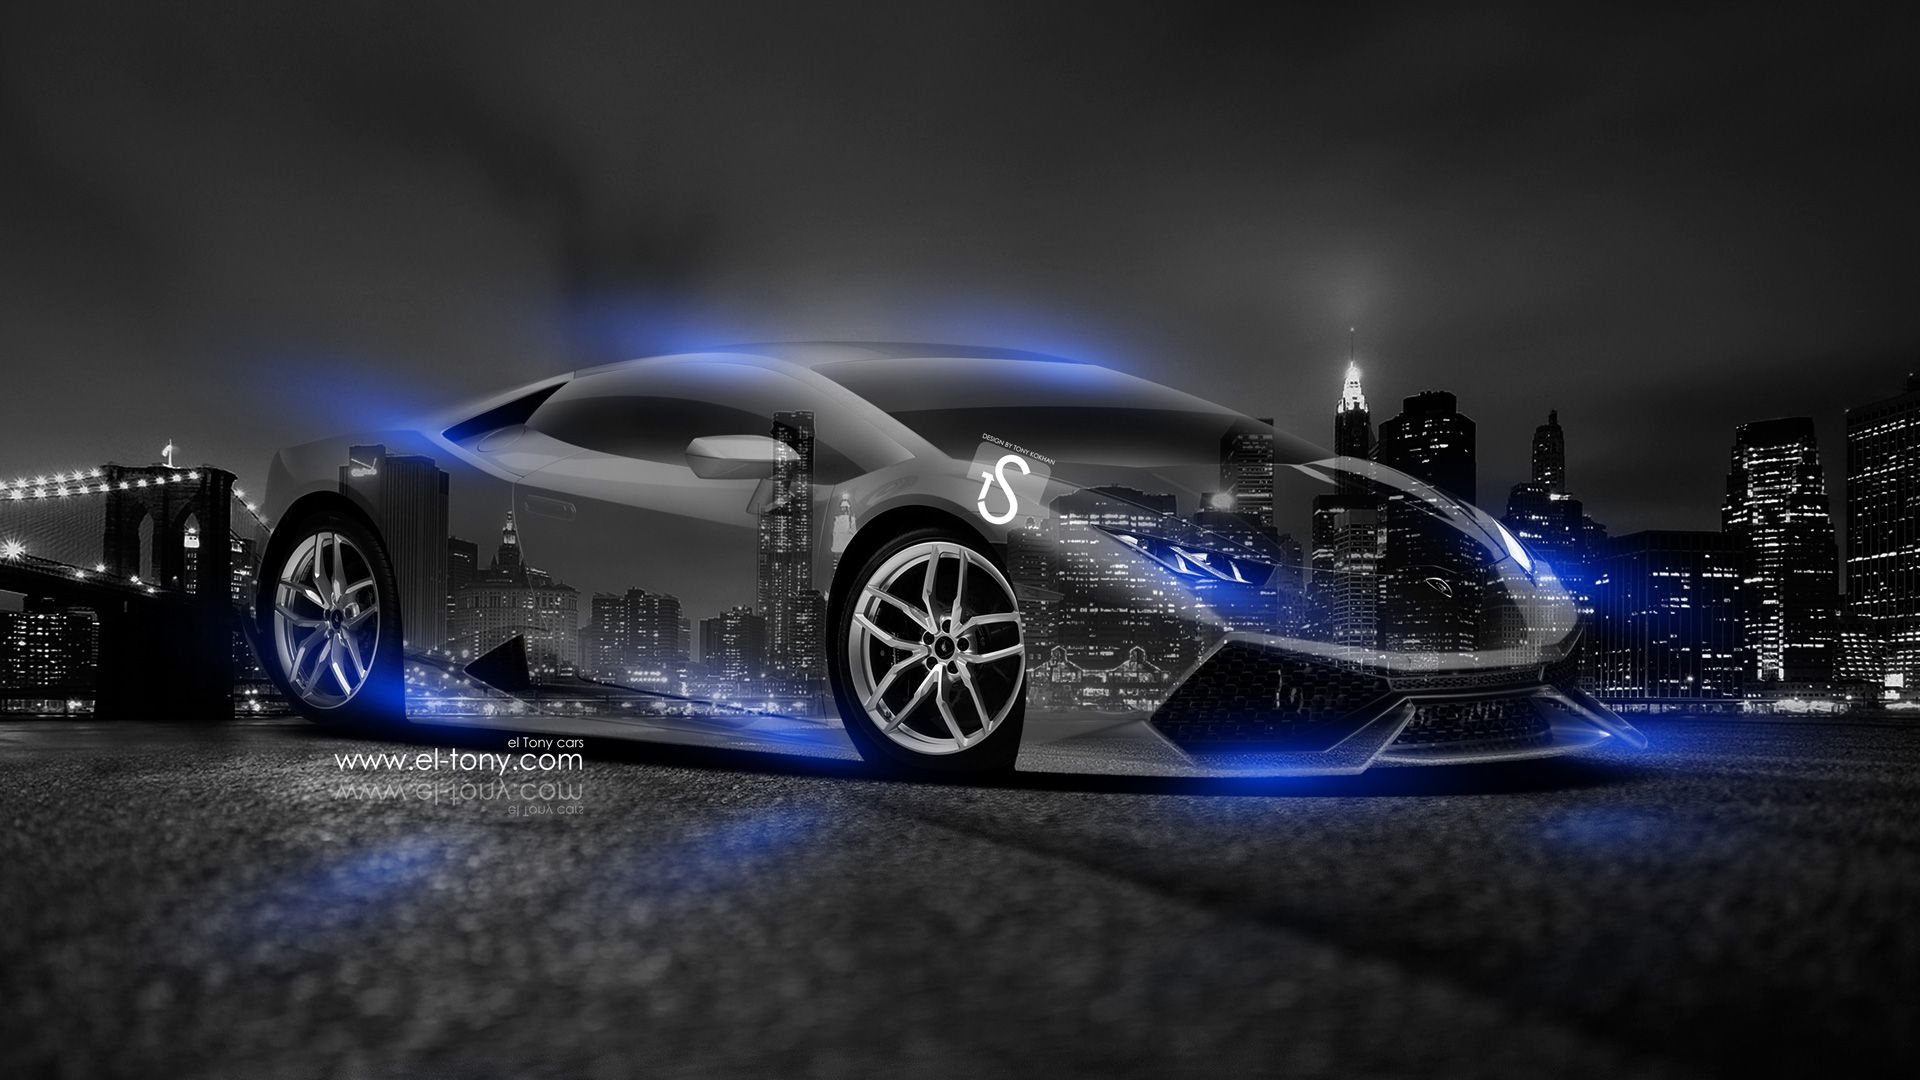 Bon Lamborghini Gallardo Back Abstract Car Design By Tony Kokhan Wallpapers) U2013  HD Desktop Wallpapers